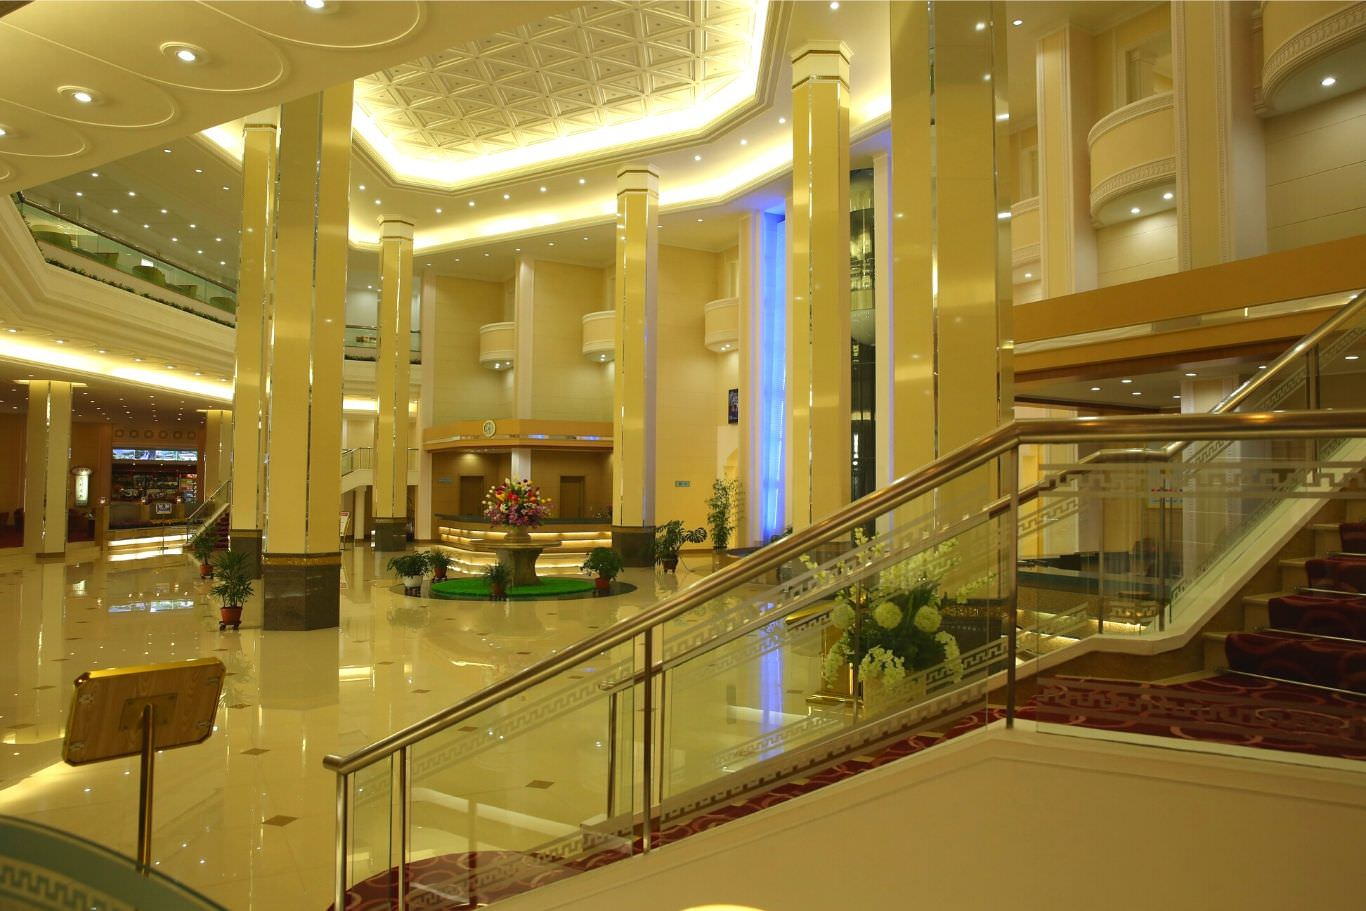 Lobby of the Hyangsan Hotel in North Korea, DPRK. This is one of the most luxurious hotels in North Korea.